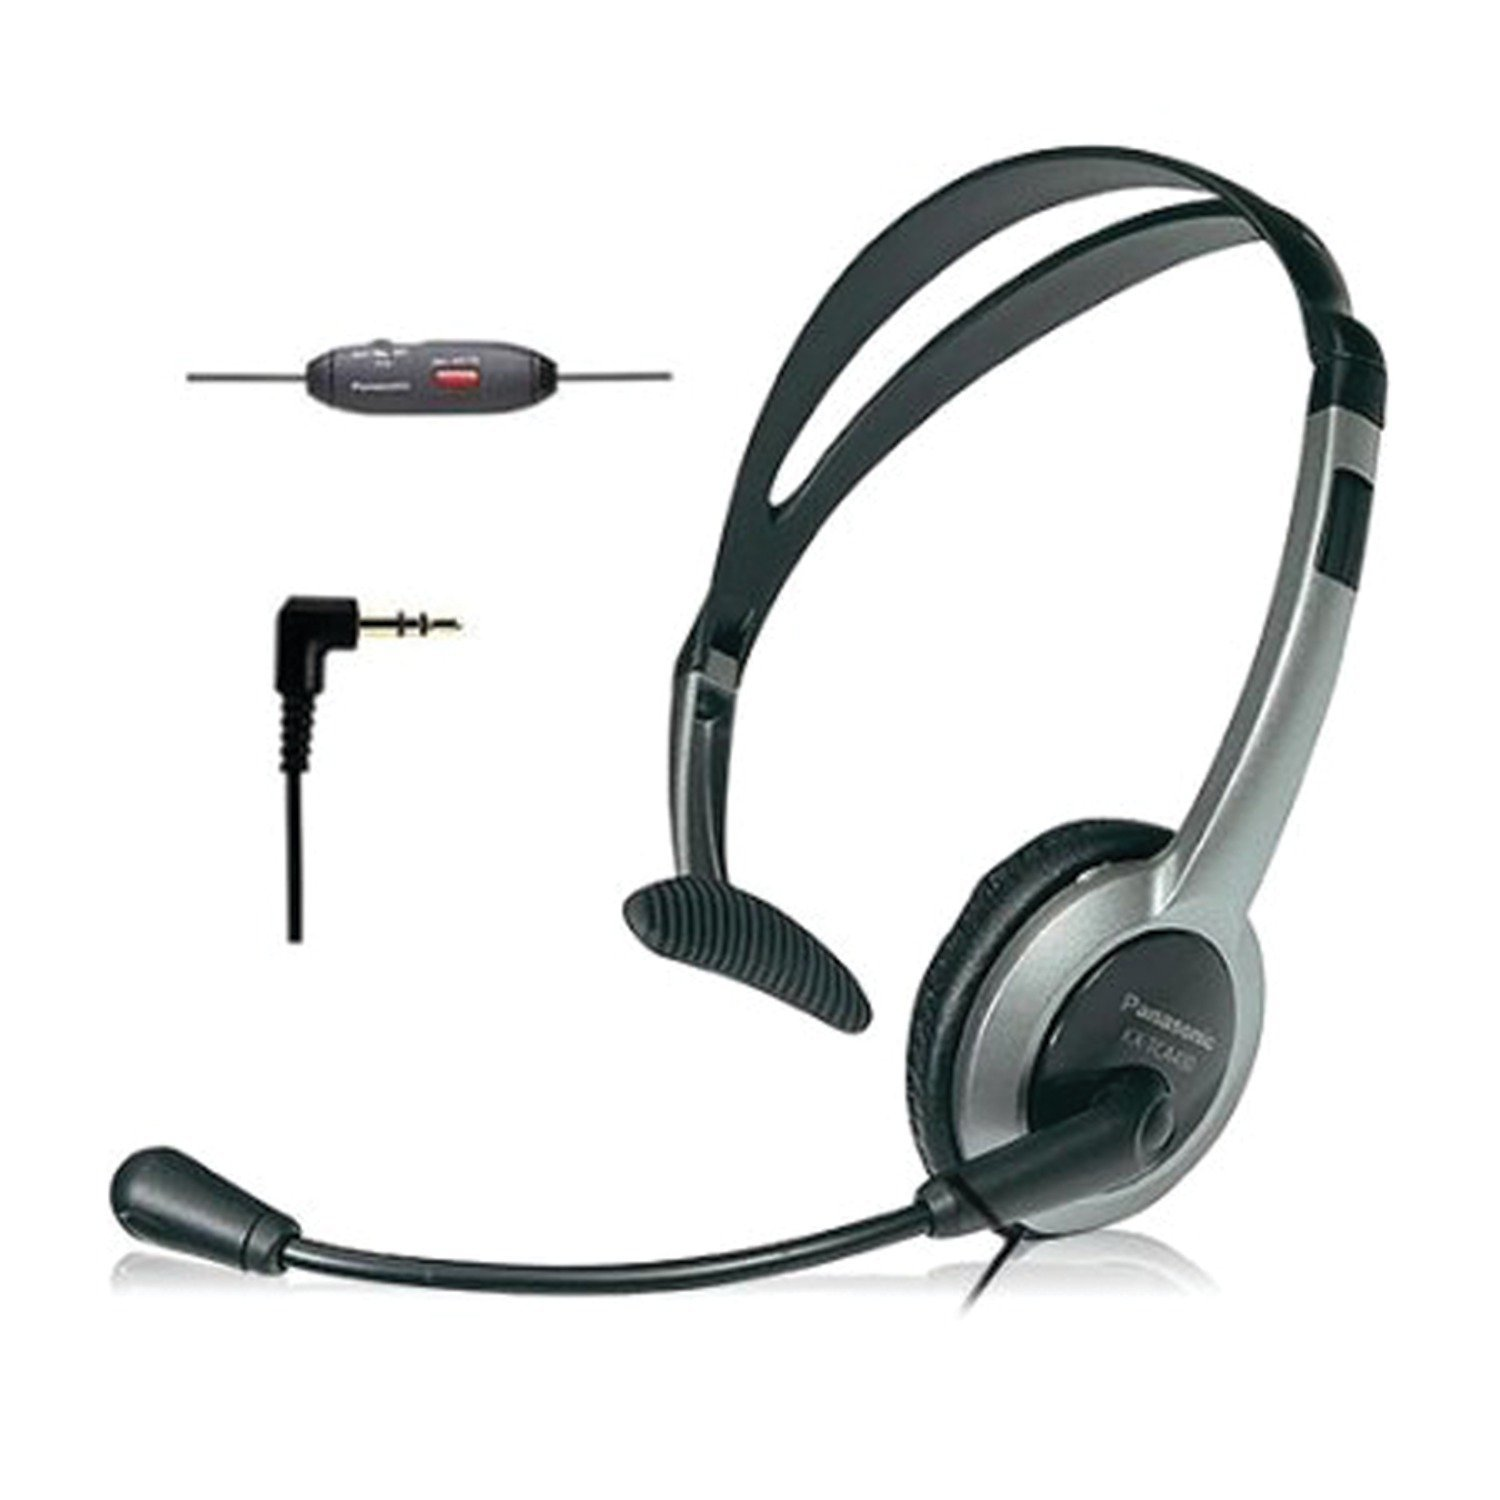 Panasonic KX-TCA430 Comfort-Fit, Foldable Headset with Flexible Noise-Cancelling Microphone and Volume Control by Panasonic